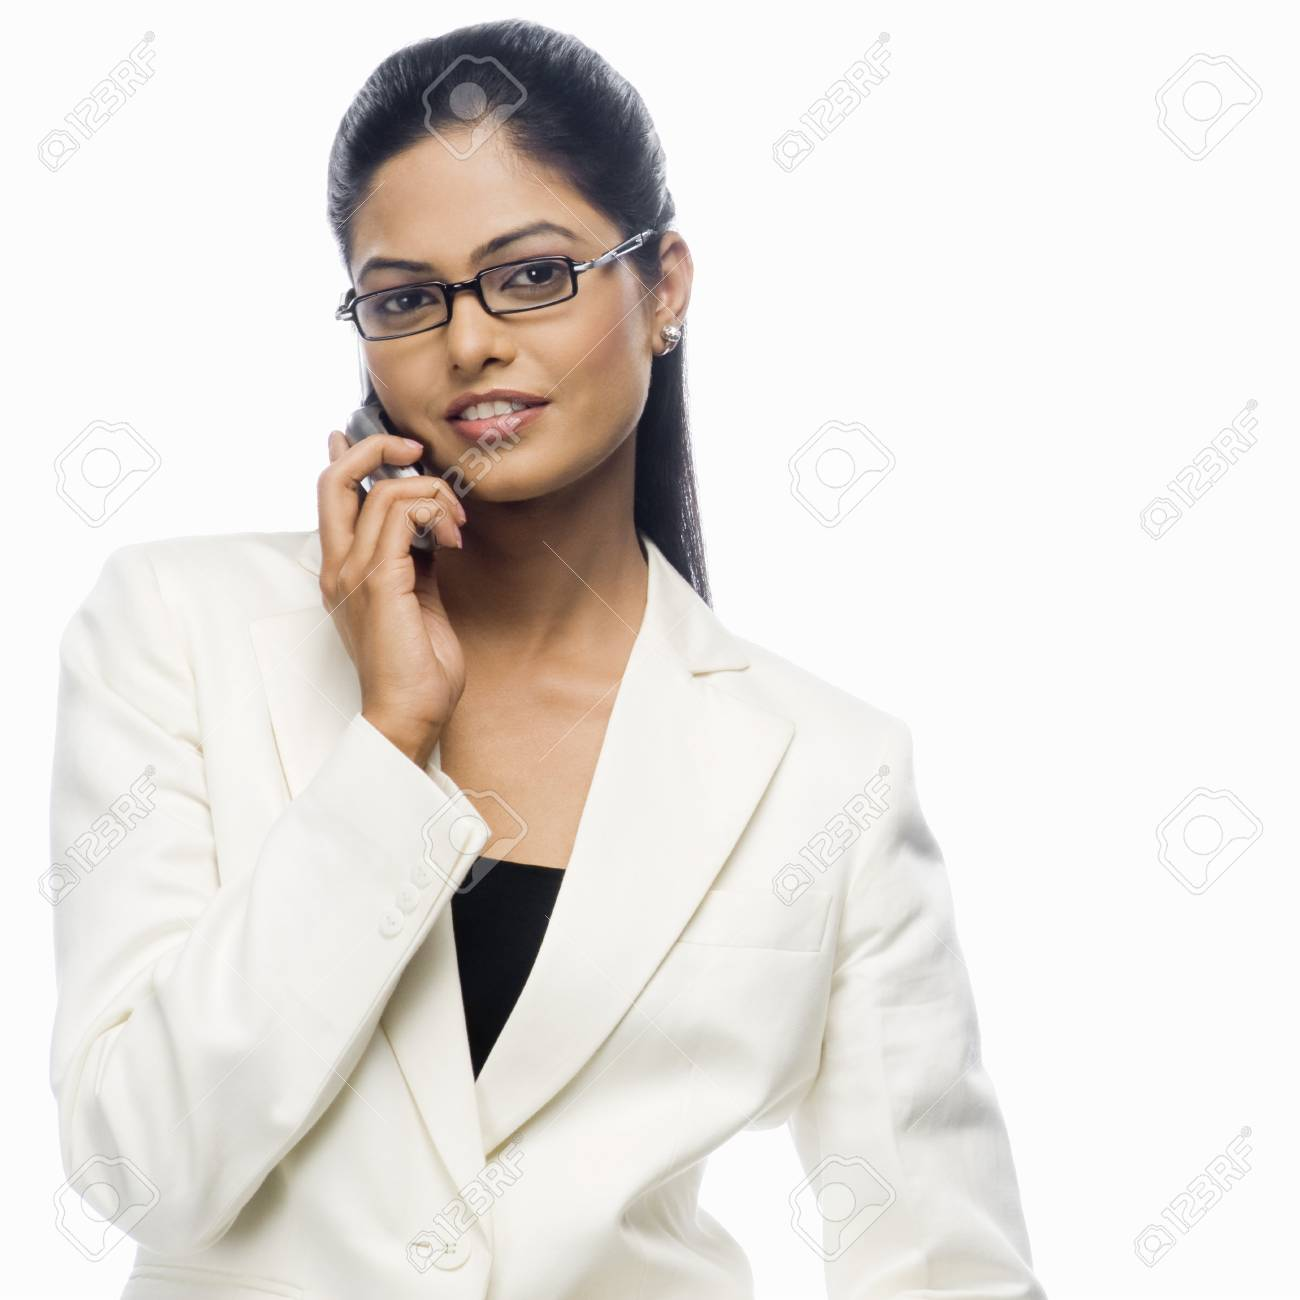 Portrait of a businesswoman talking on a mobile phone Stock Photo - 10126304